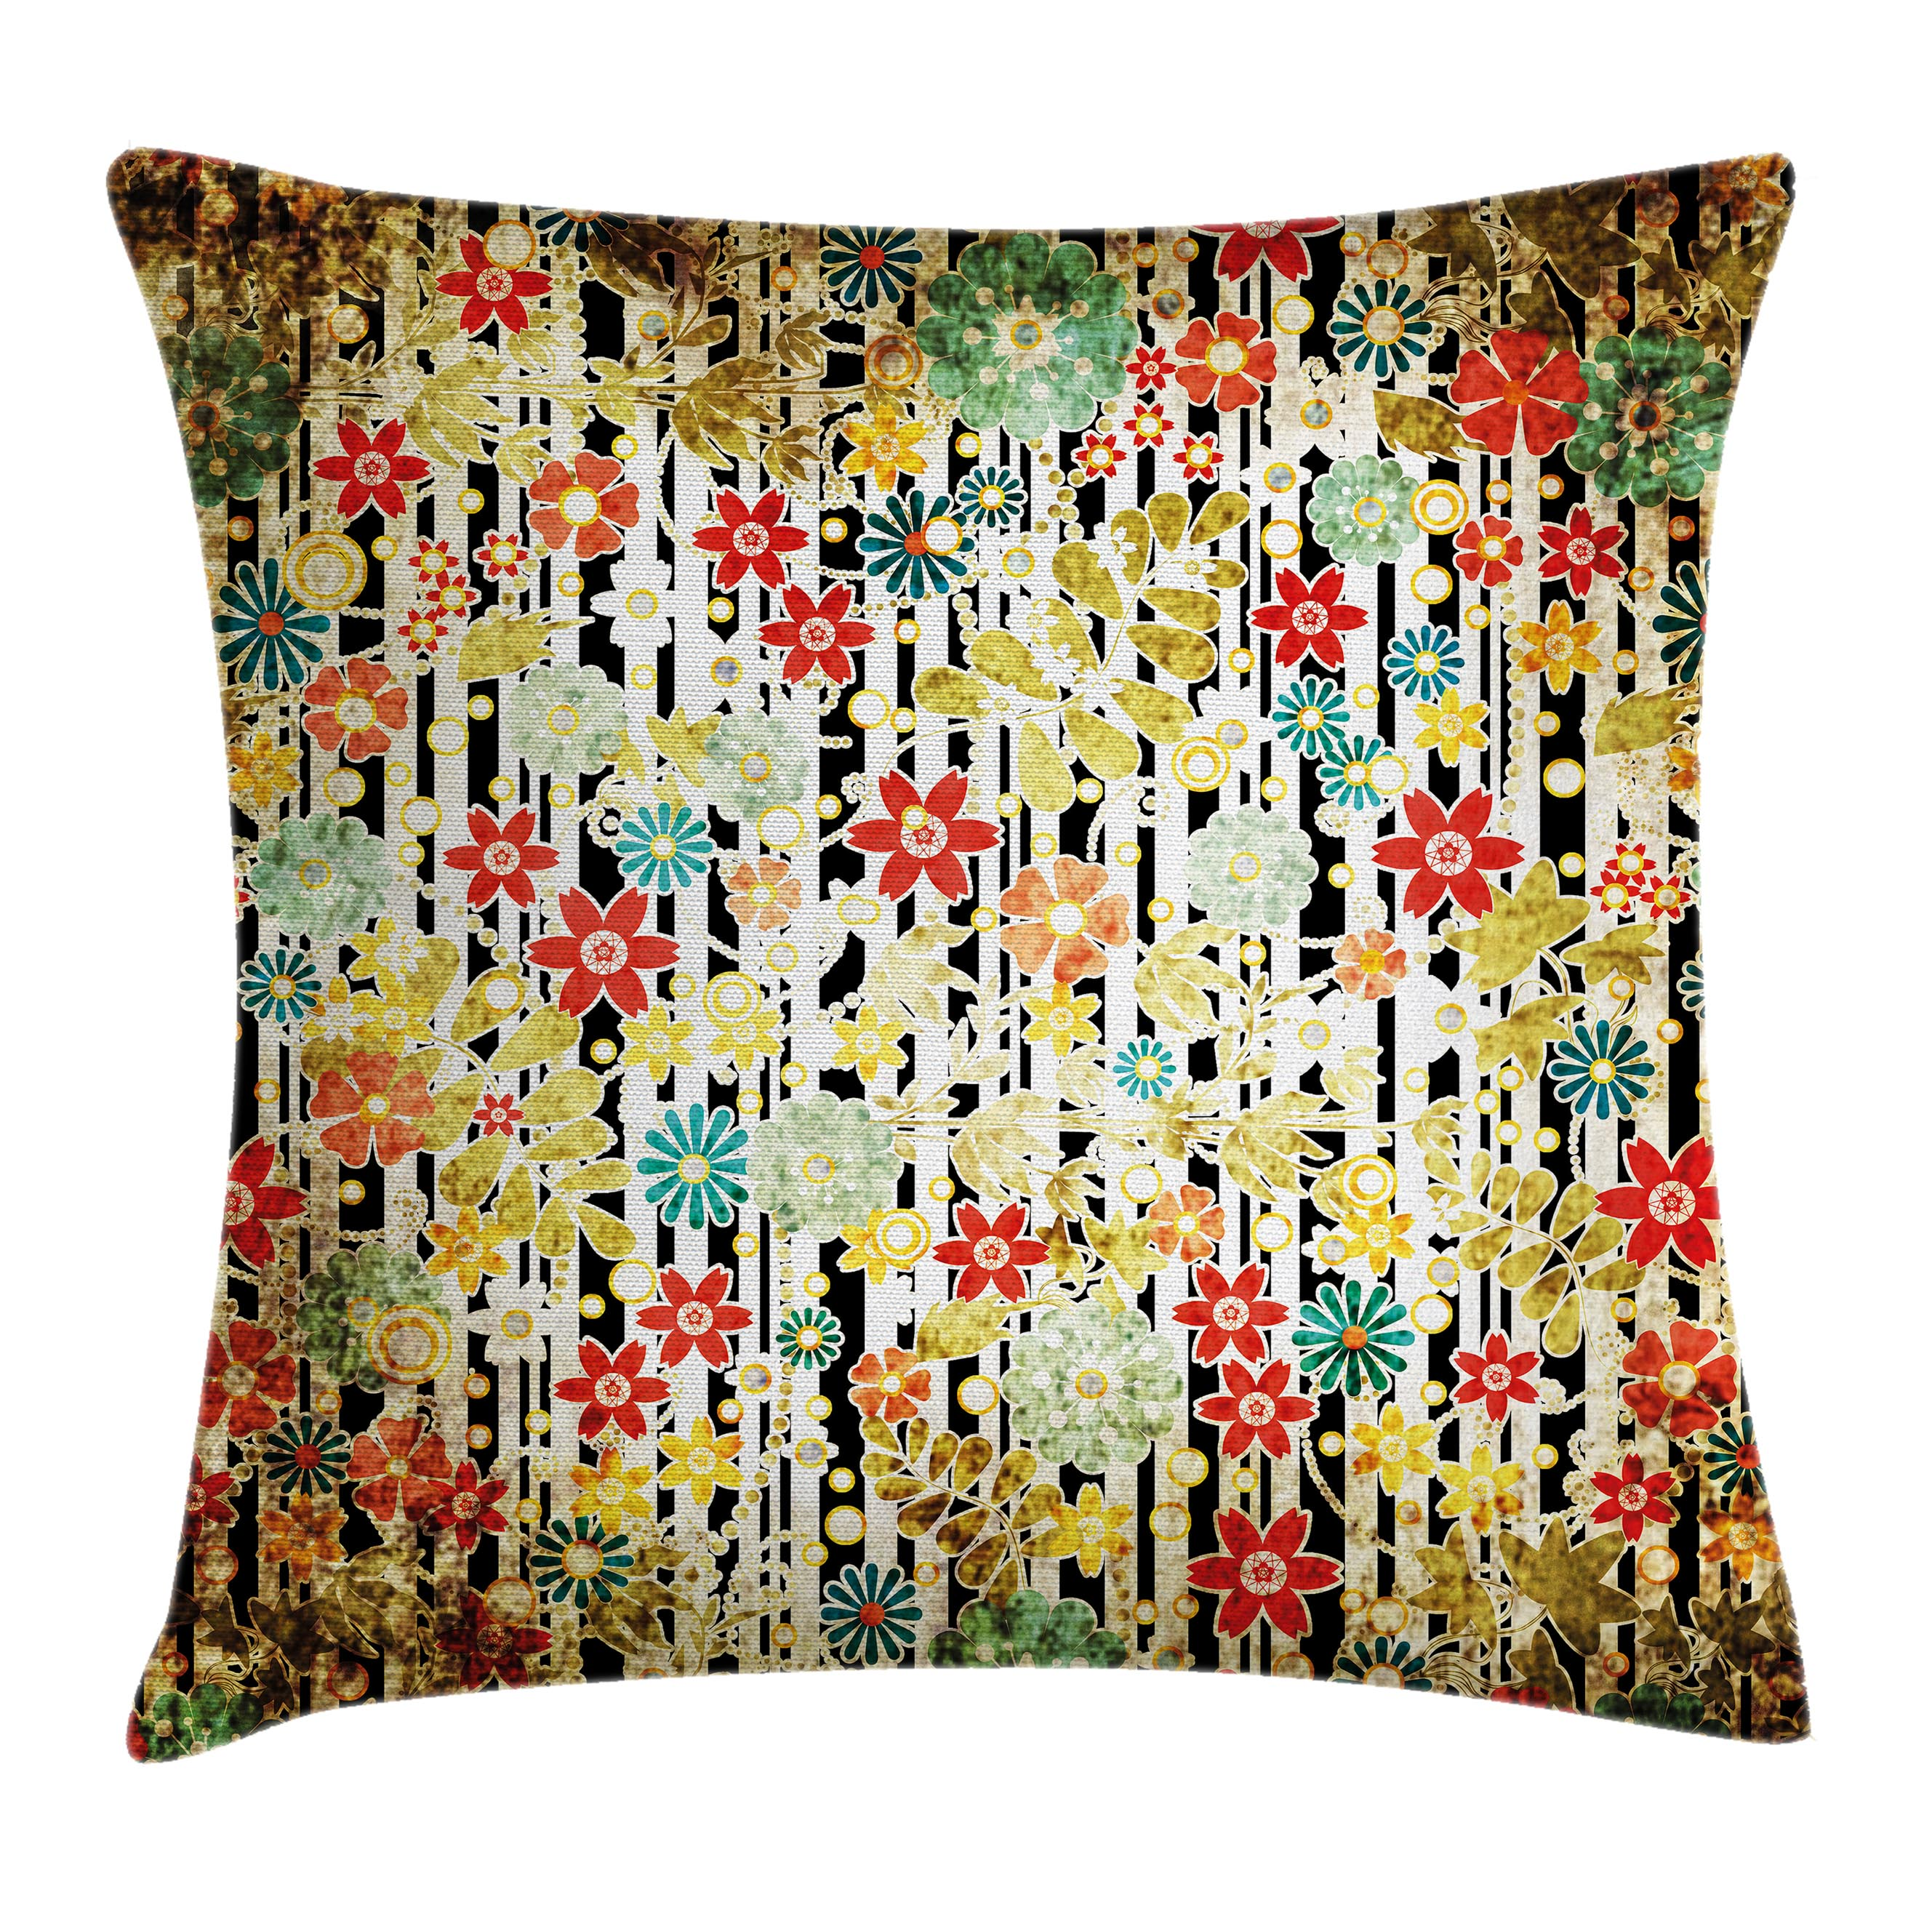 Floral Decor Throw Pillow Cushion Cover, Ivy Line like Colored Flowers Leafs and Buds with Striped Background Artwork, Decorative Square Accent Pillow Case, 16 X 16 Inches, Multicolor, by Ambesonne